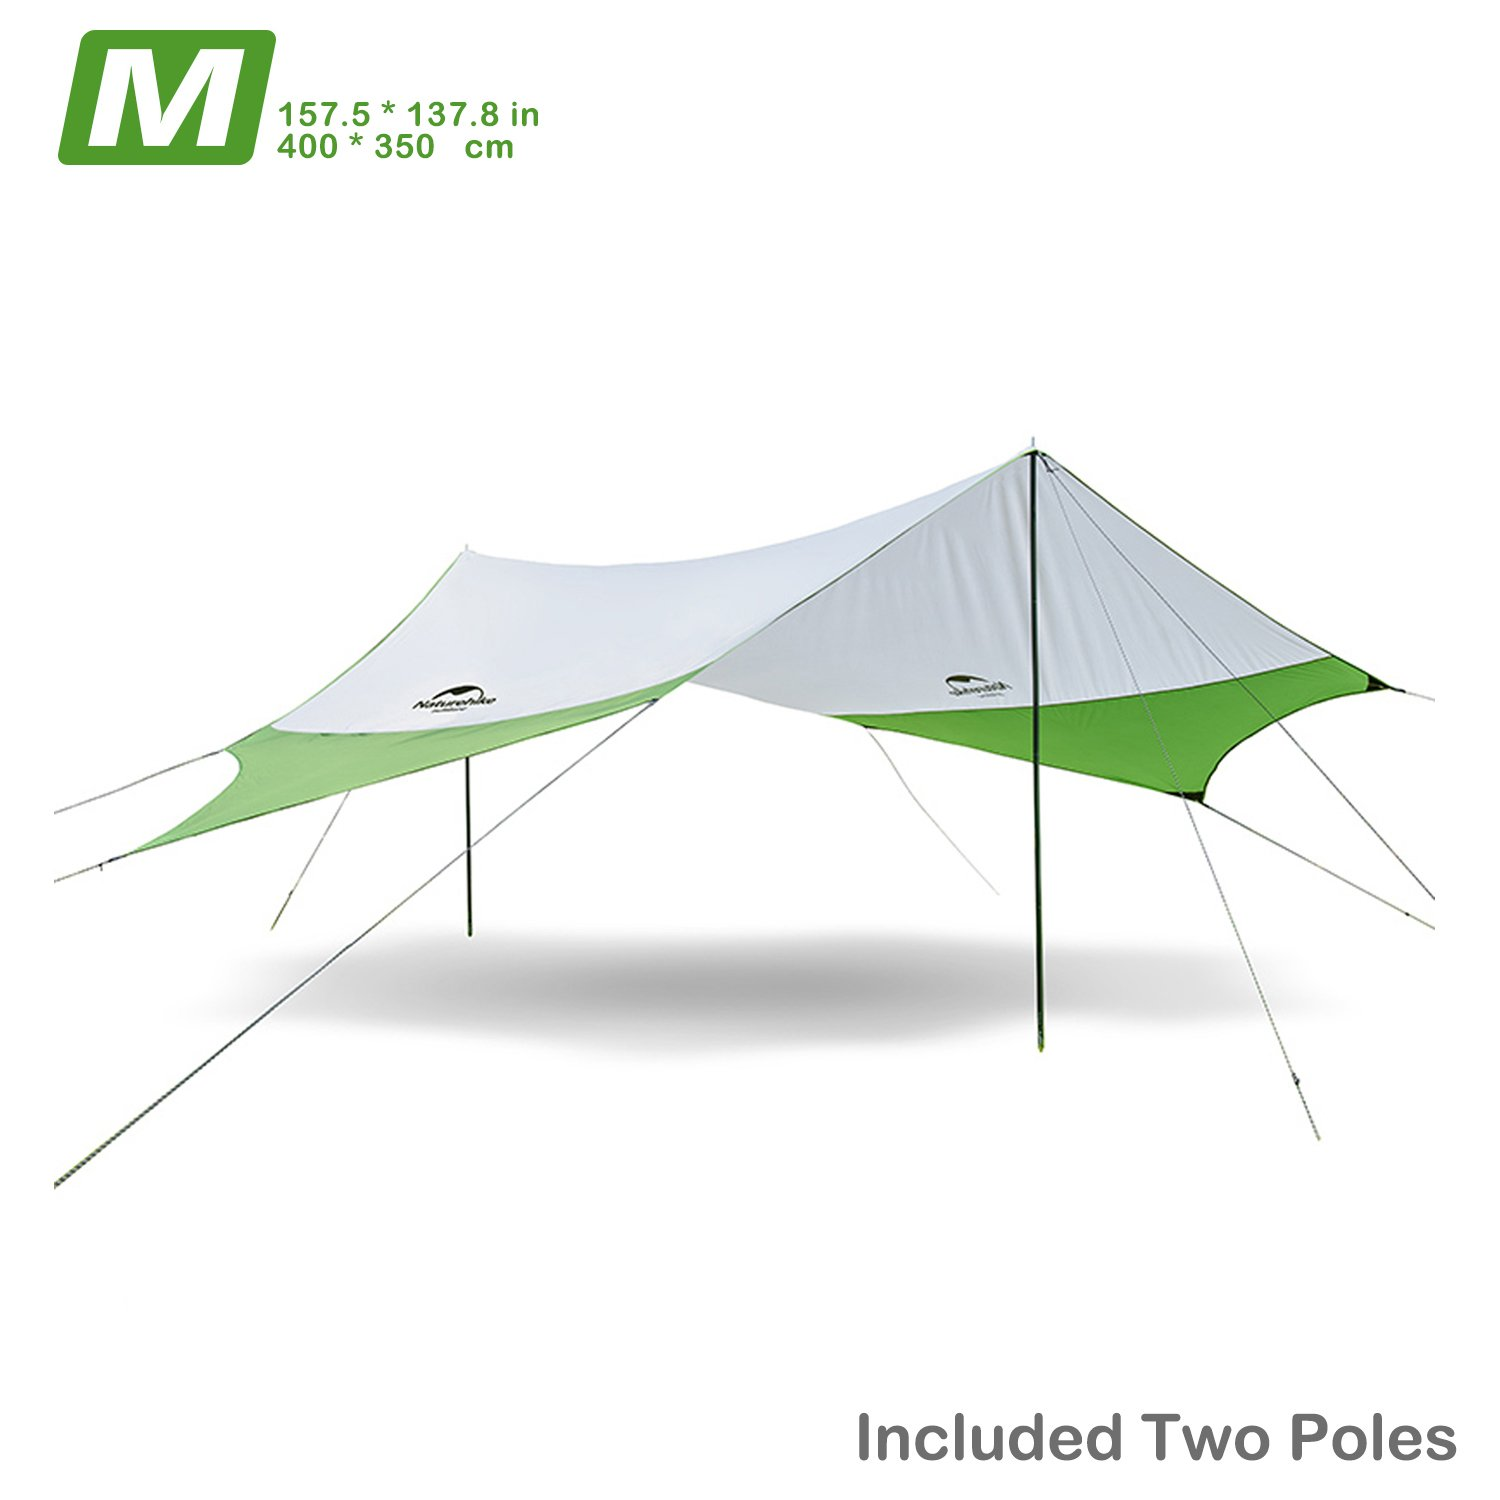 Topnaca Naturehike Lightweight Camping Tarp Shelter Beach Tent Sun Shade Awning Canopy with Tarp Poles, Portable Waterproof Sun-Proof 204.7x181/157.5x137.8 for Hiking Fishing Picnic (Green&Grey-M) by Topnaca